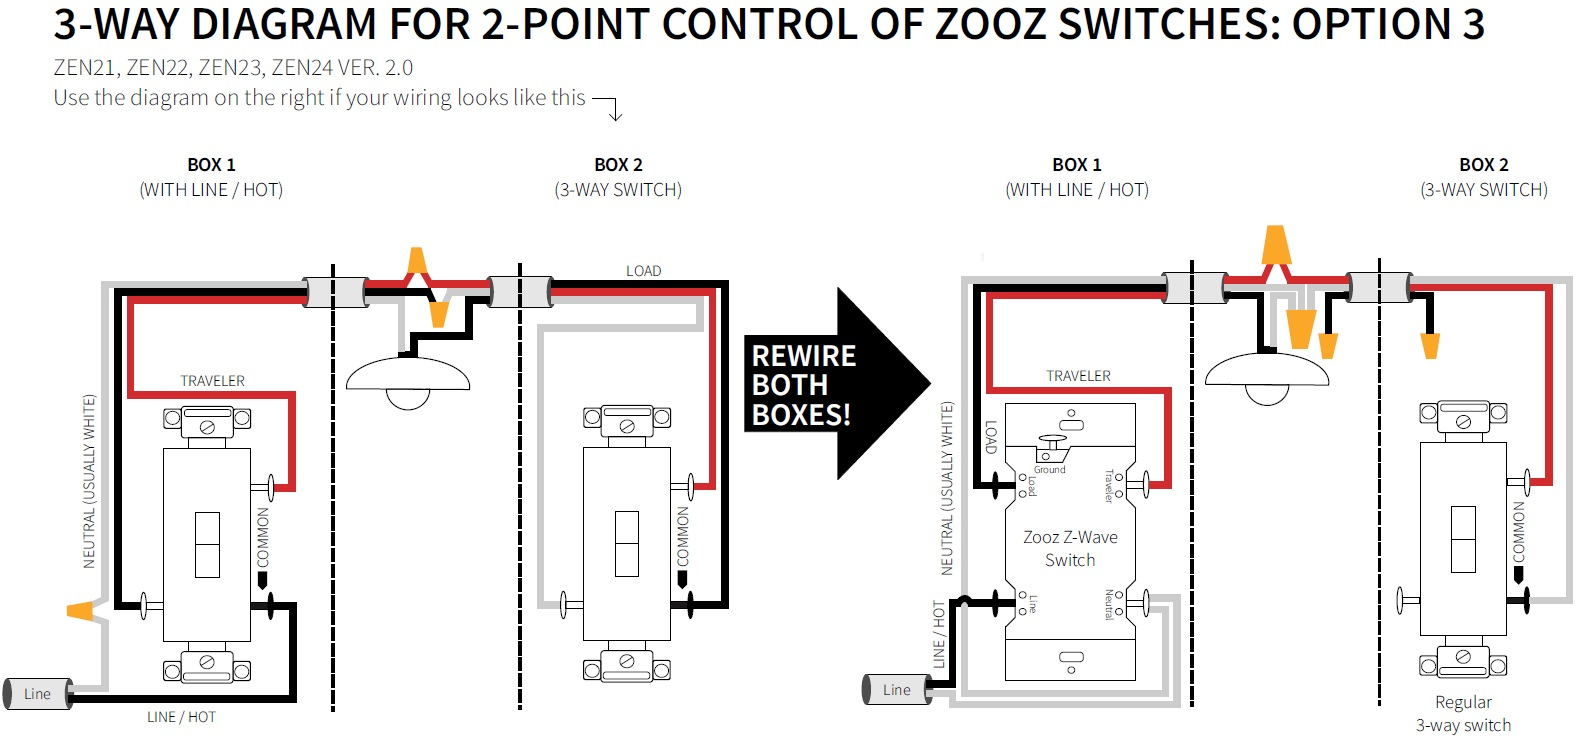 How To Wire Your Zooz Switch In A 3-Way Configuration - Zooz - Wiring Diagram For 3 Way Switch